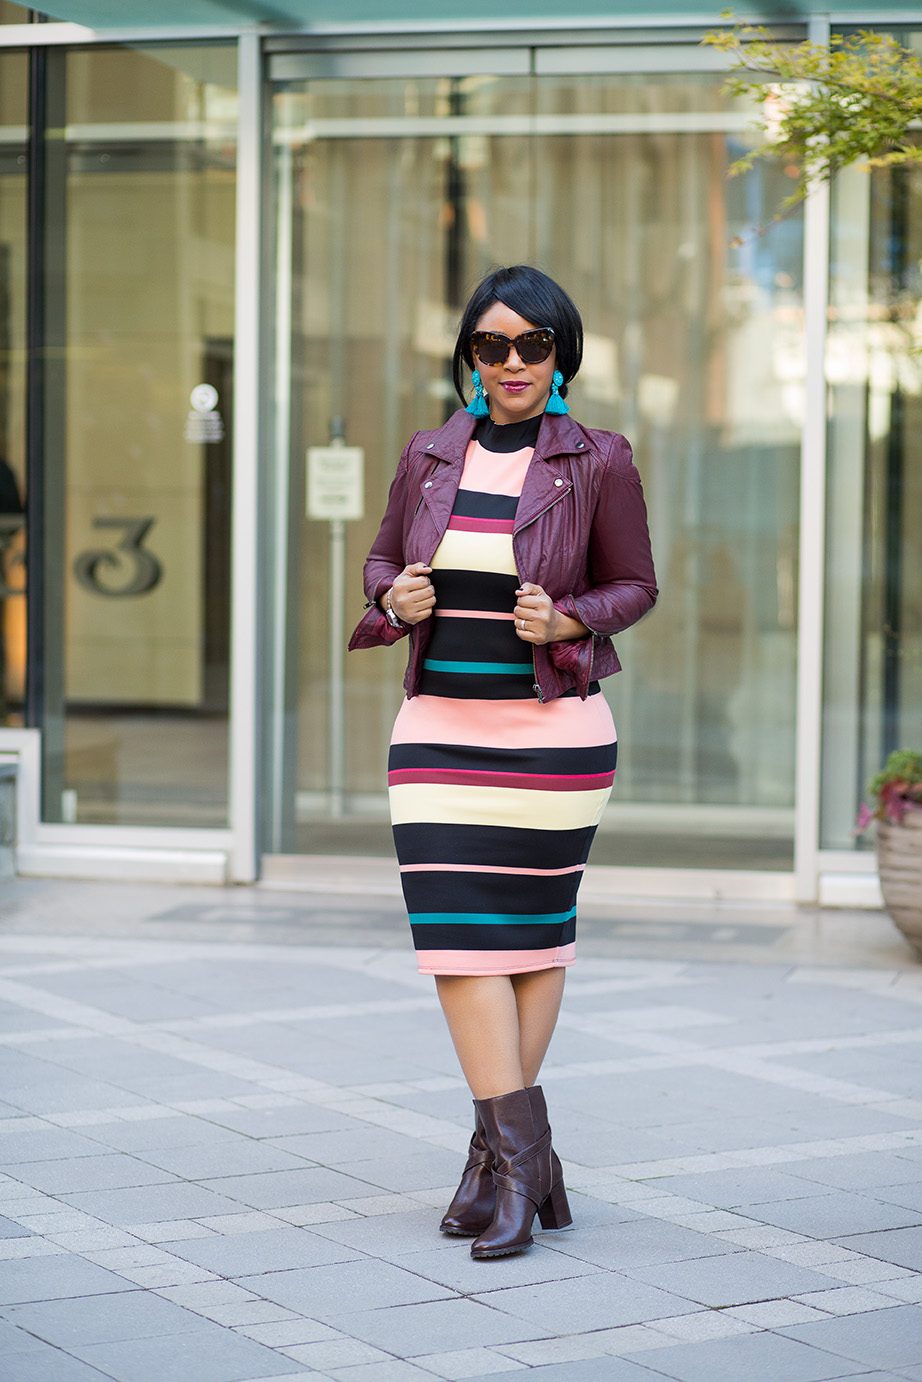 A Casual Valentine's Day - what I'm wearing, ASOS Burgundy Leather Jacket, Belle + Sky™ Sleeveless Striped Scuba Dress JCPenney, Kate Spade boots, H&M tassel earrings, Citizen watch, Valentine's Day outfits, bodycon dress